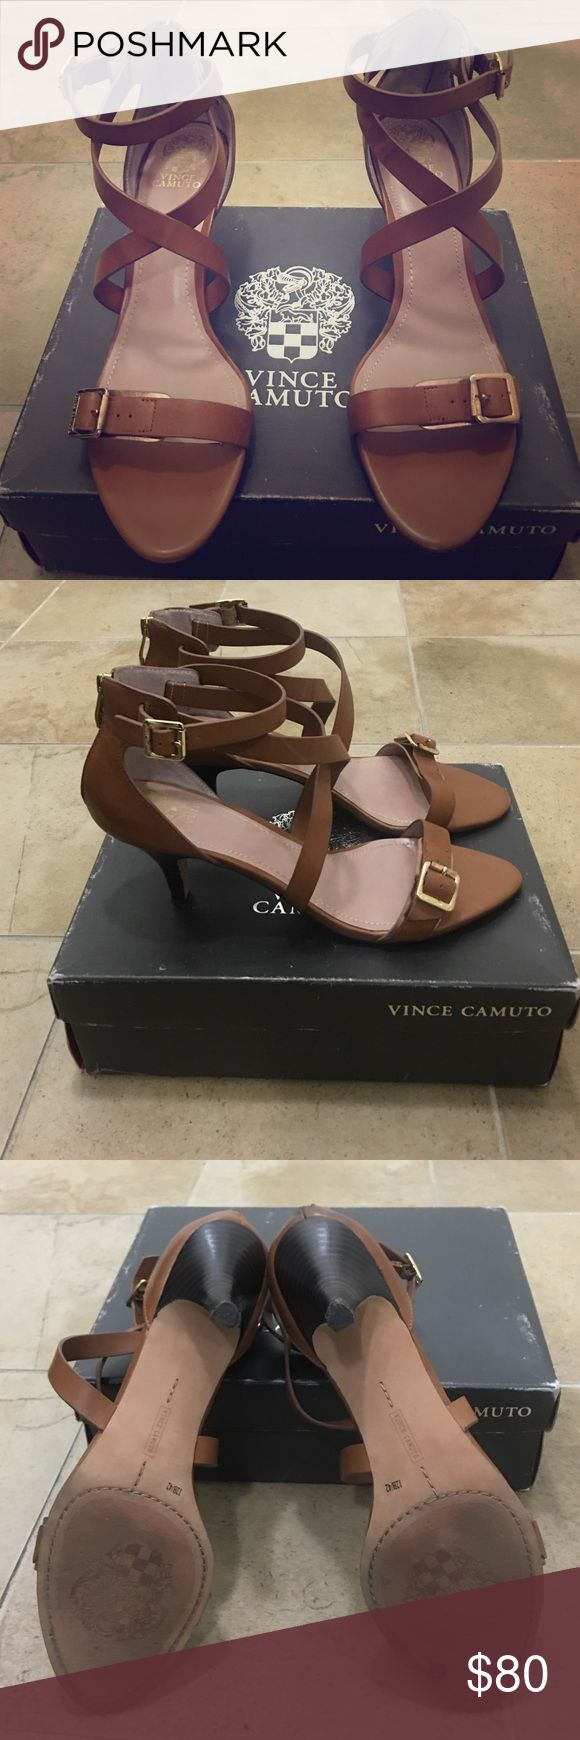 Vince Camuto Kitten Heels Leather Vince Camuto kitten heels in tan leather cute buckles Vince Camuto Shoes Sandals